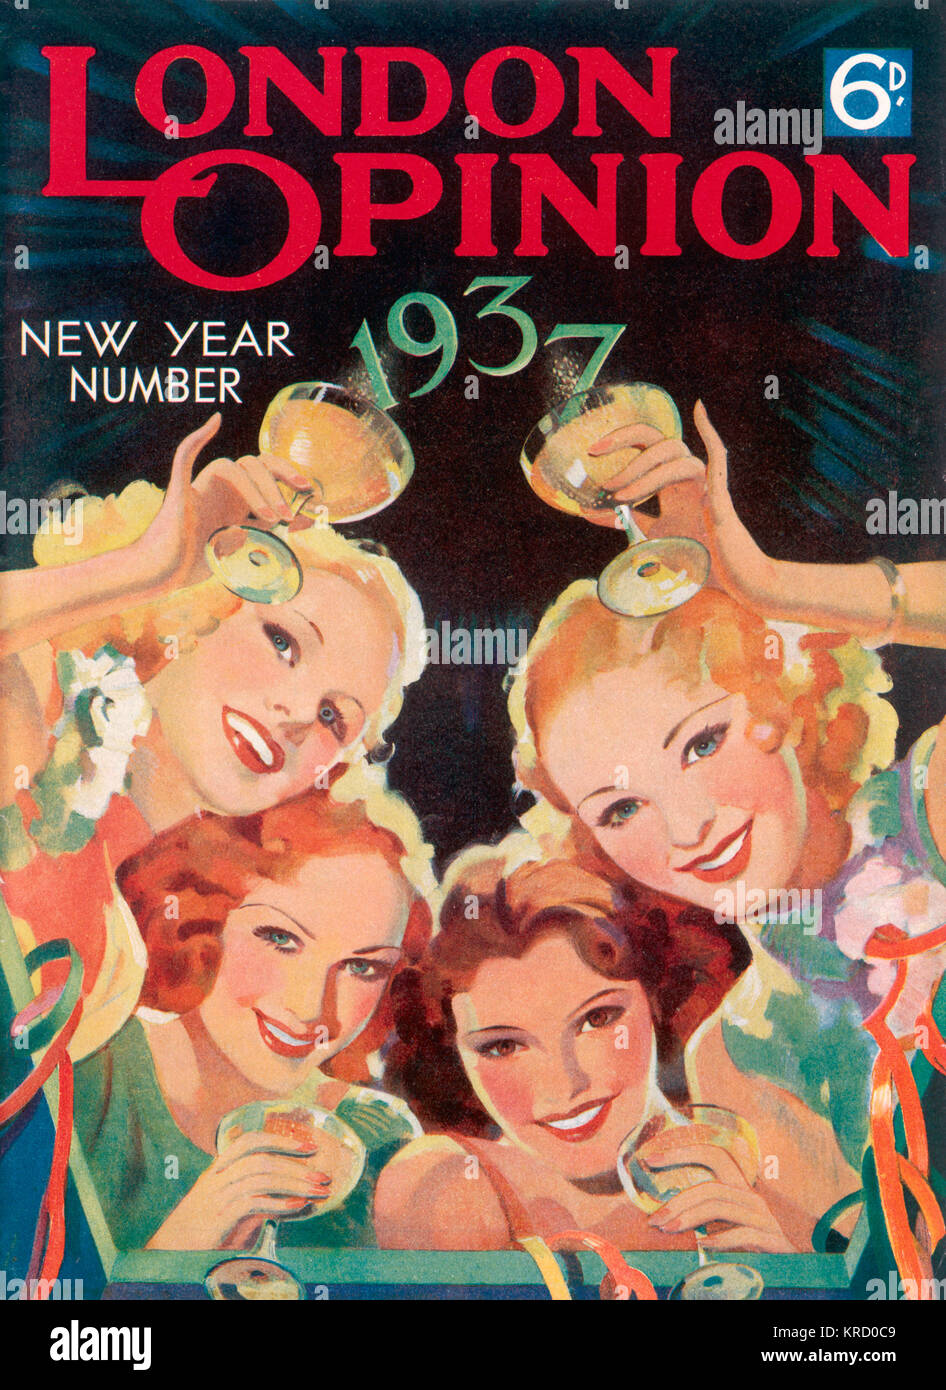 Four glamorous ladies raise  their glasses to toast the New  Year in 1937.        Date: 1937 - Stock Image